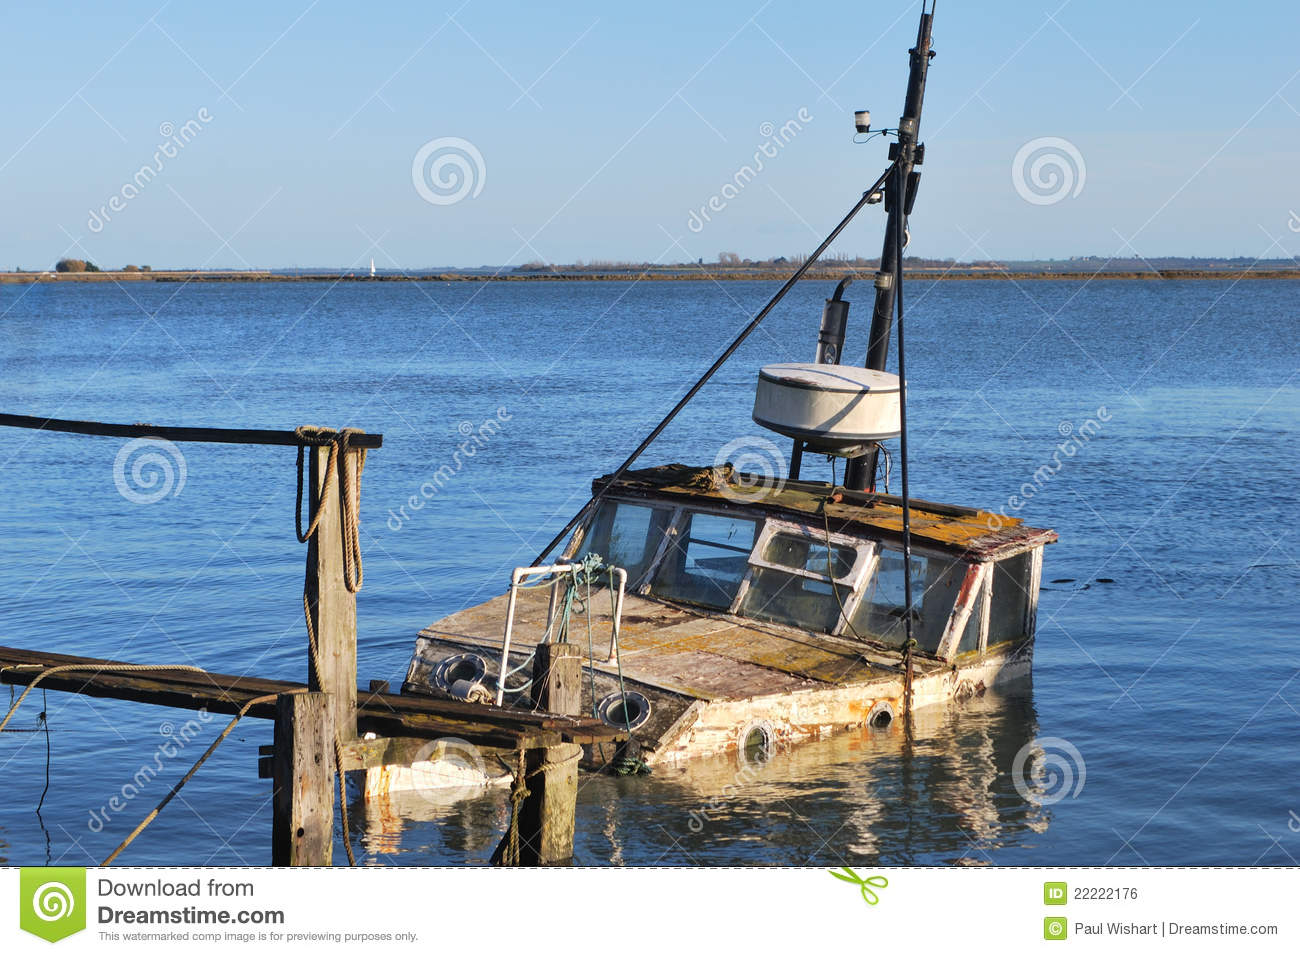 Old Wooden Boat Royalty Free Stock Image - Image: 22222176